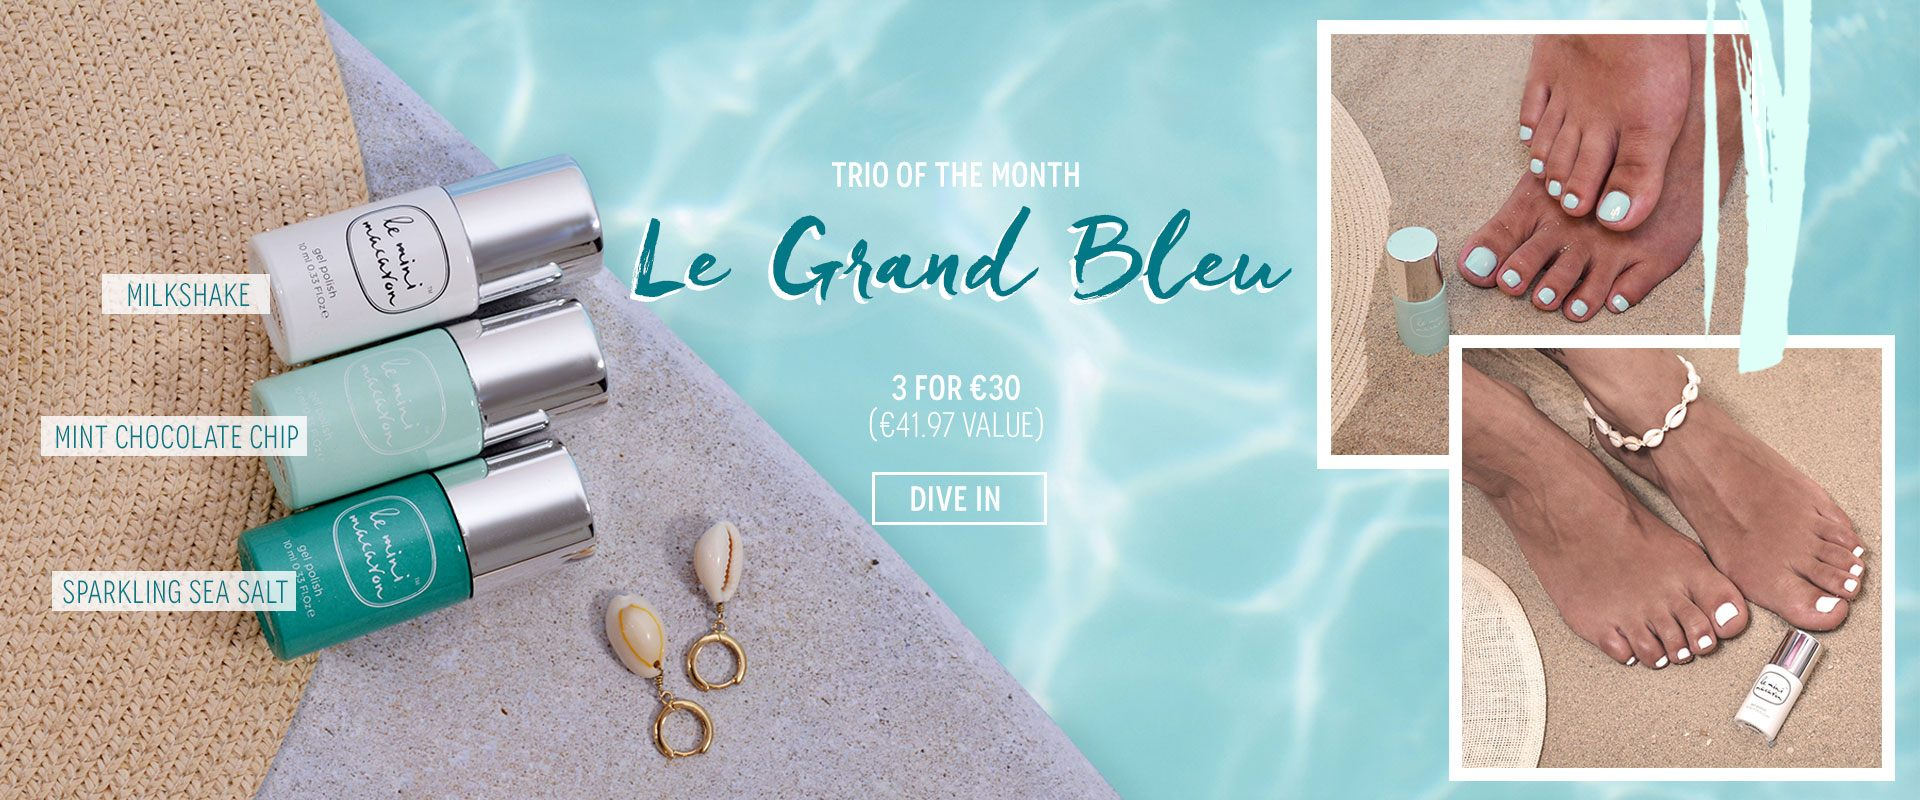 Le Grand Bleu Trio of July Gel Nail Polish